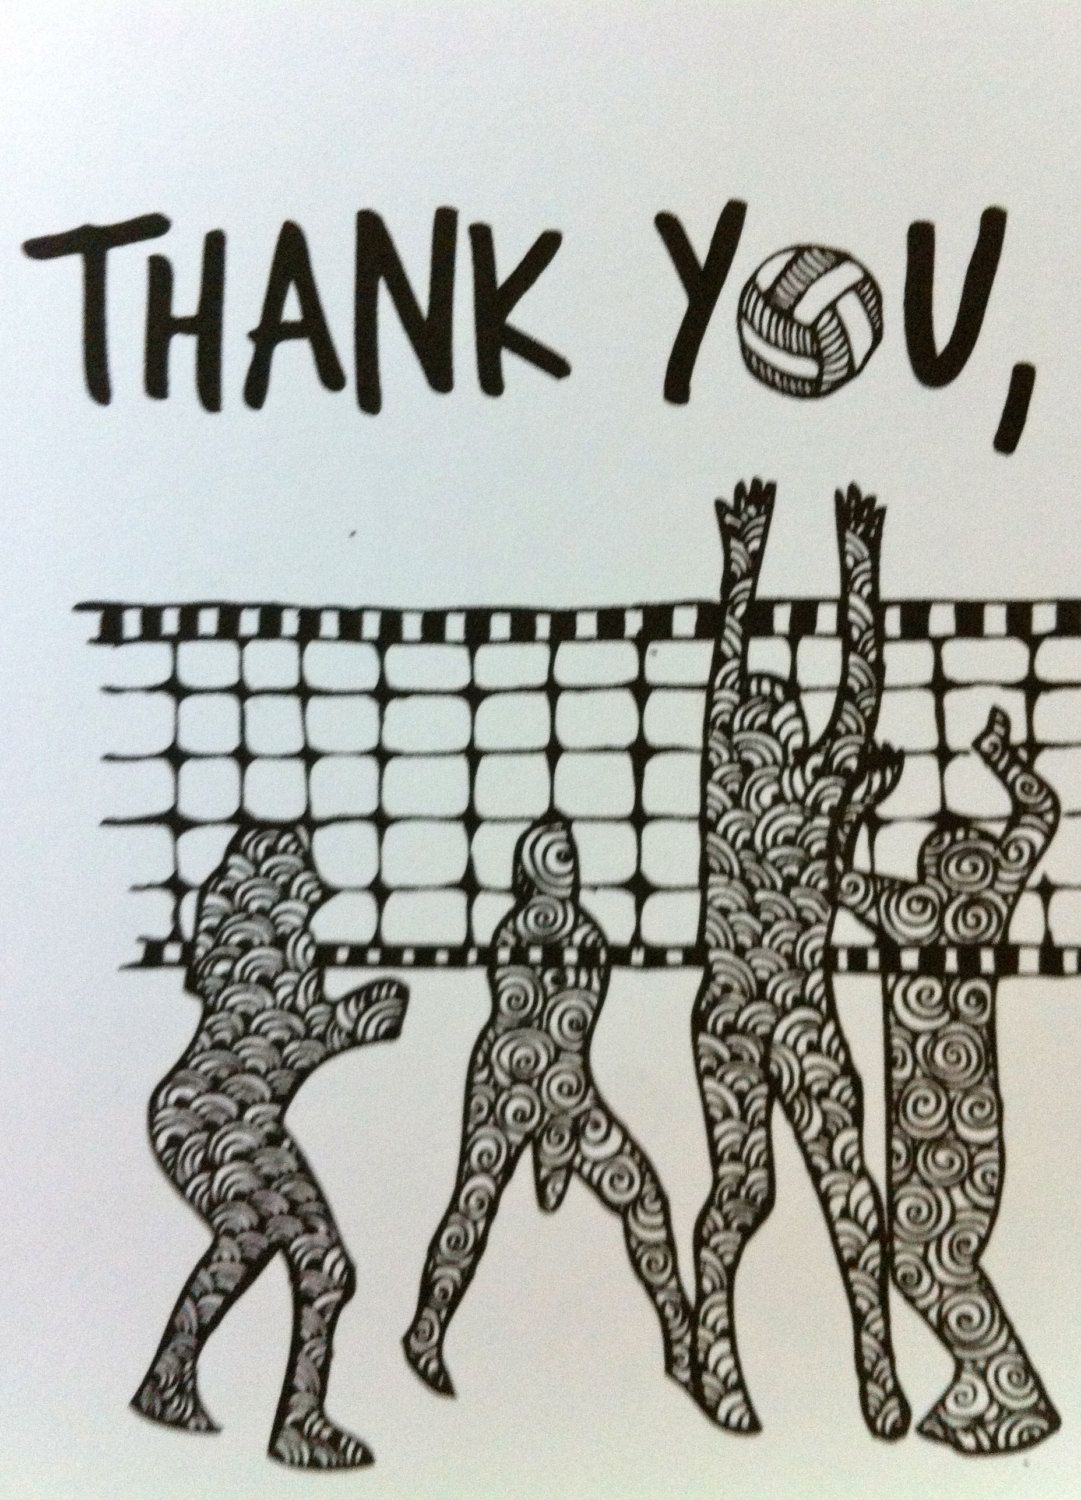 Volleyball Team Thank You Coach Card Hand Made By Bahiasurdesign How To Draw Hands Inspirational Cards Inspirational Scripture